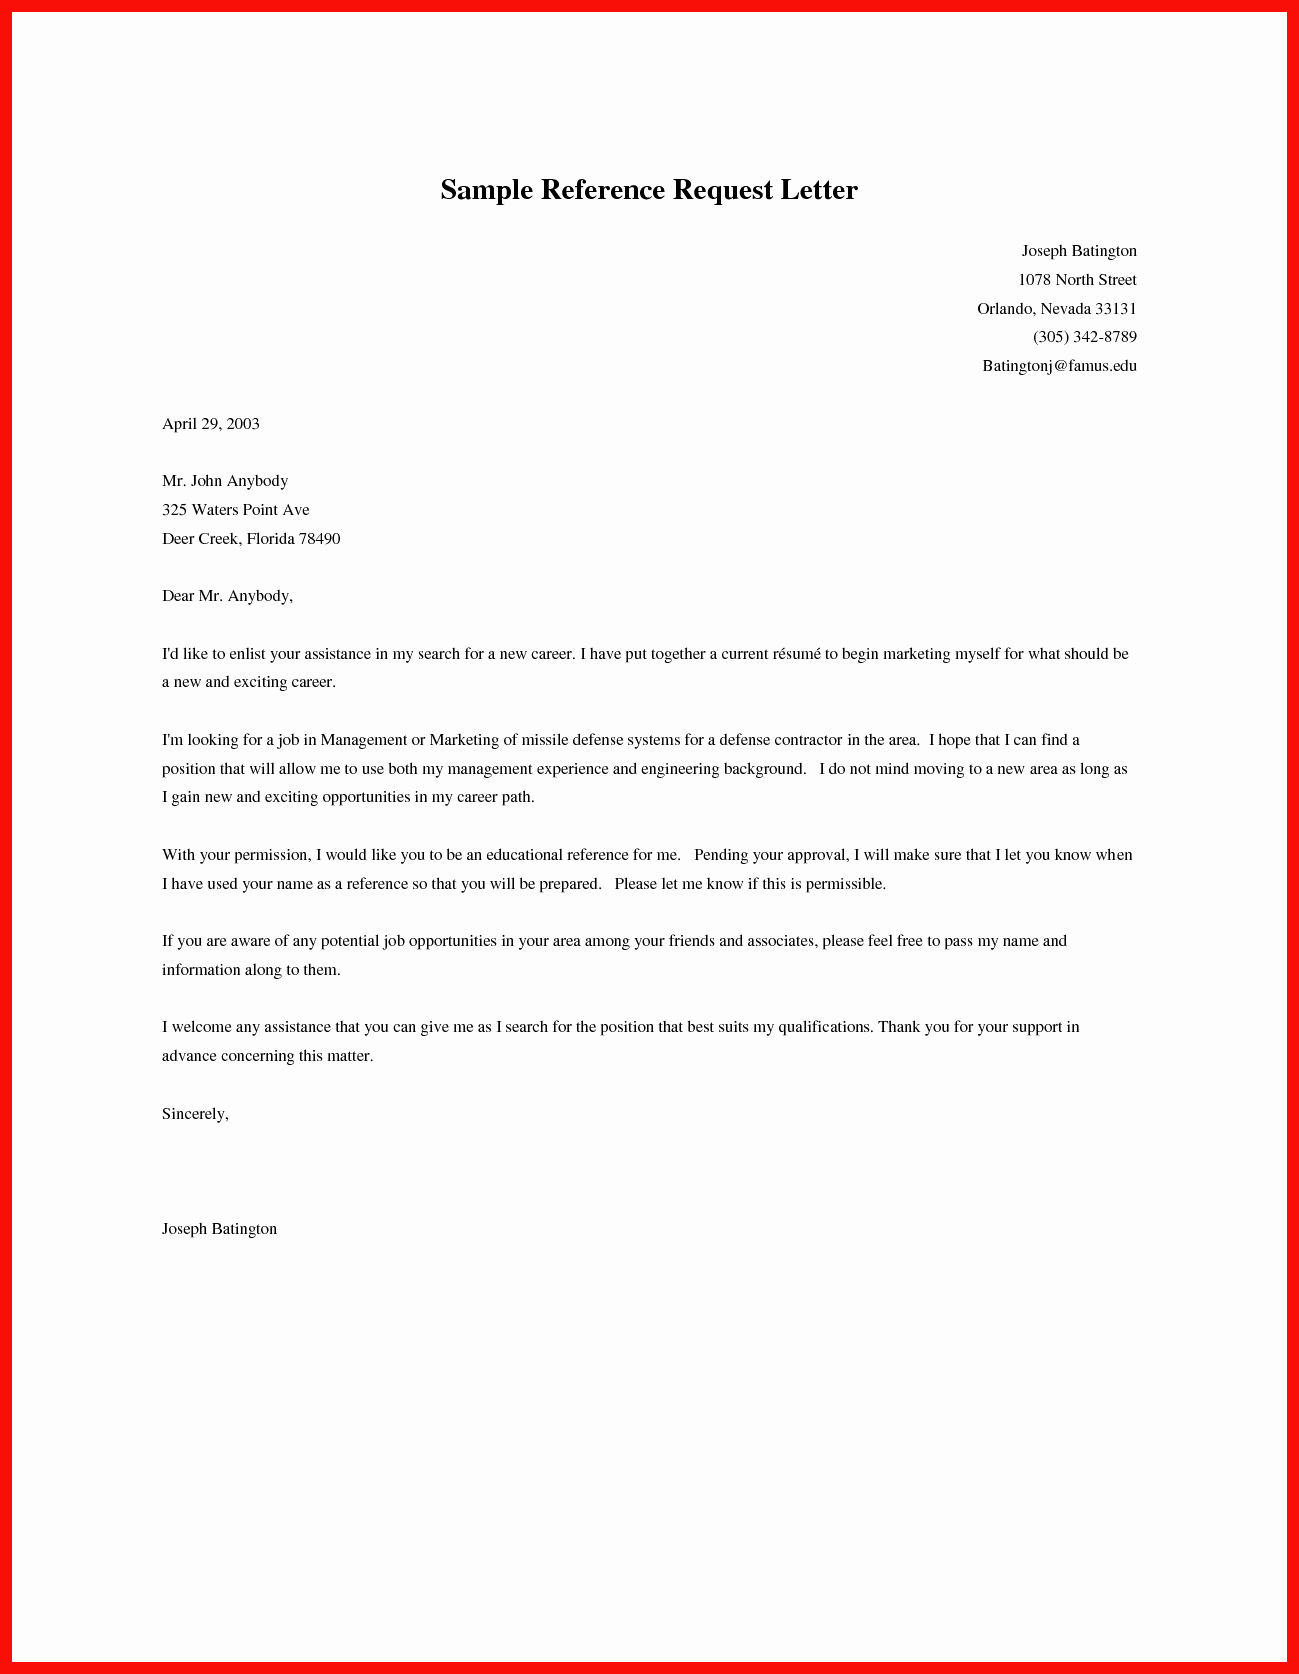 Letter Requesting Letter Of Recommendation Elegant ask Re Mendation Letter